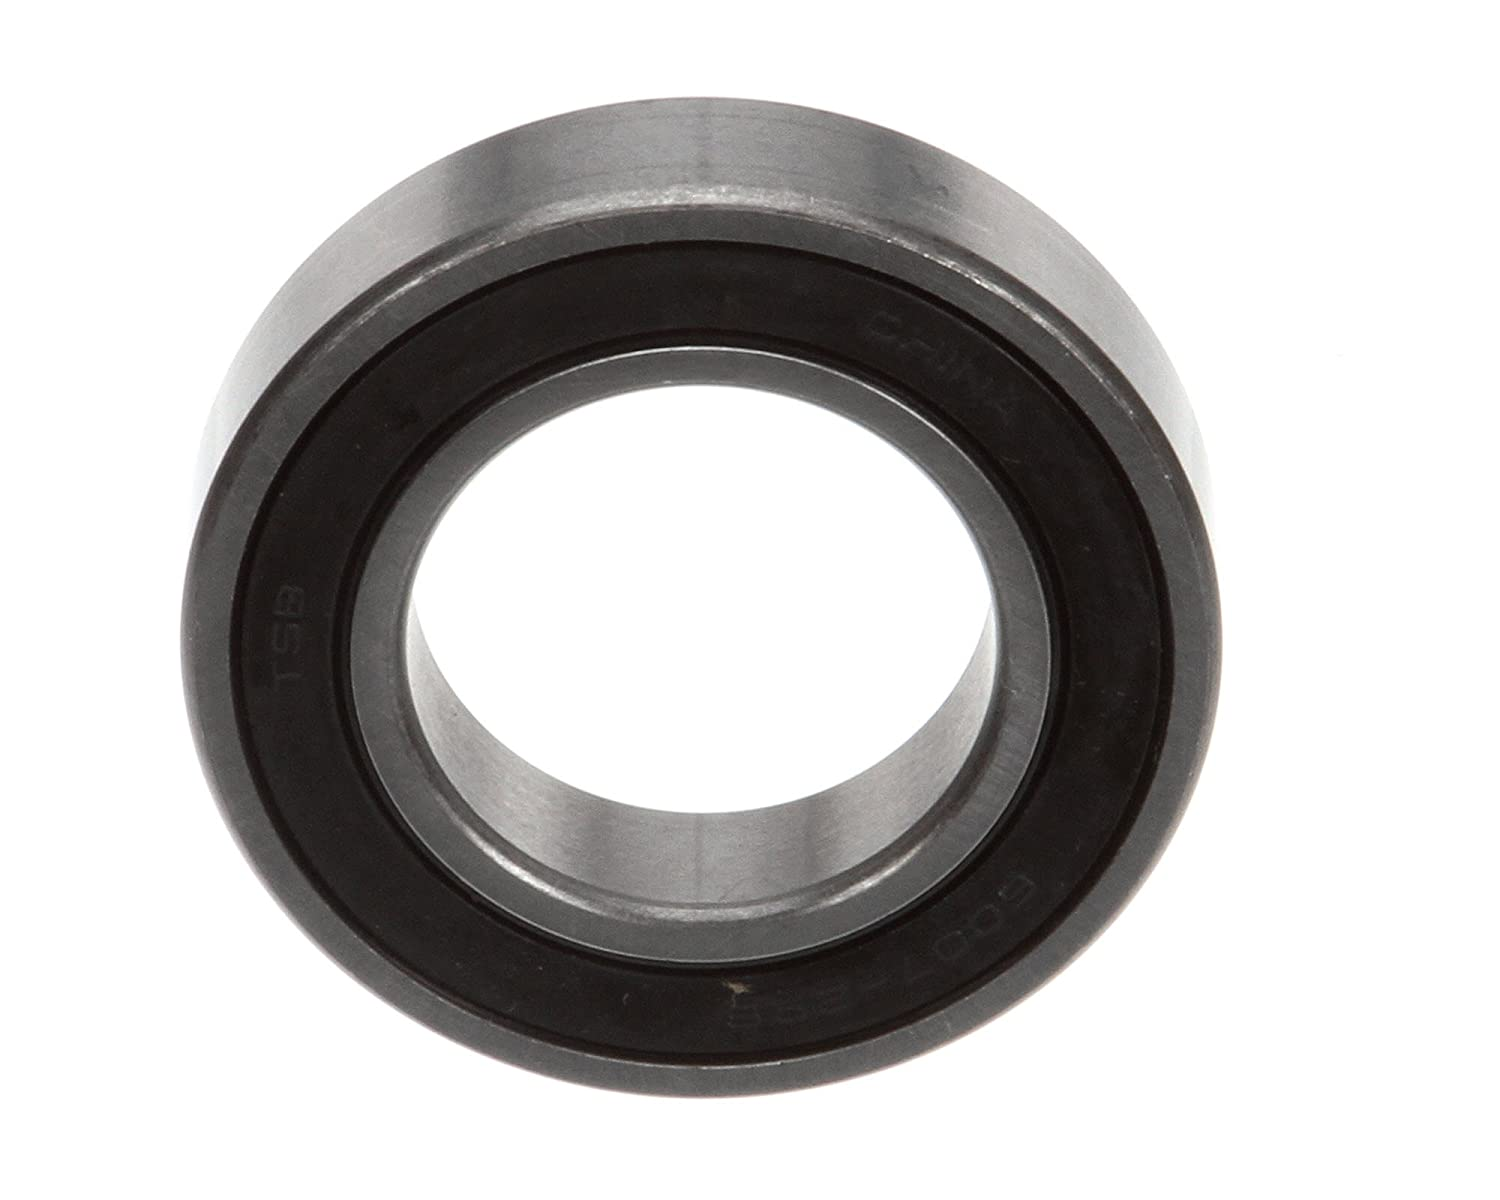 Flanged Stud Type Smith Bearing FCR-3 1//2 Smith-Trax Bearings 4 7//16 Flange Diameter 4 7//16 Flange Diameter Miller Bearings SMI FCR-3-1//2